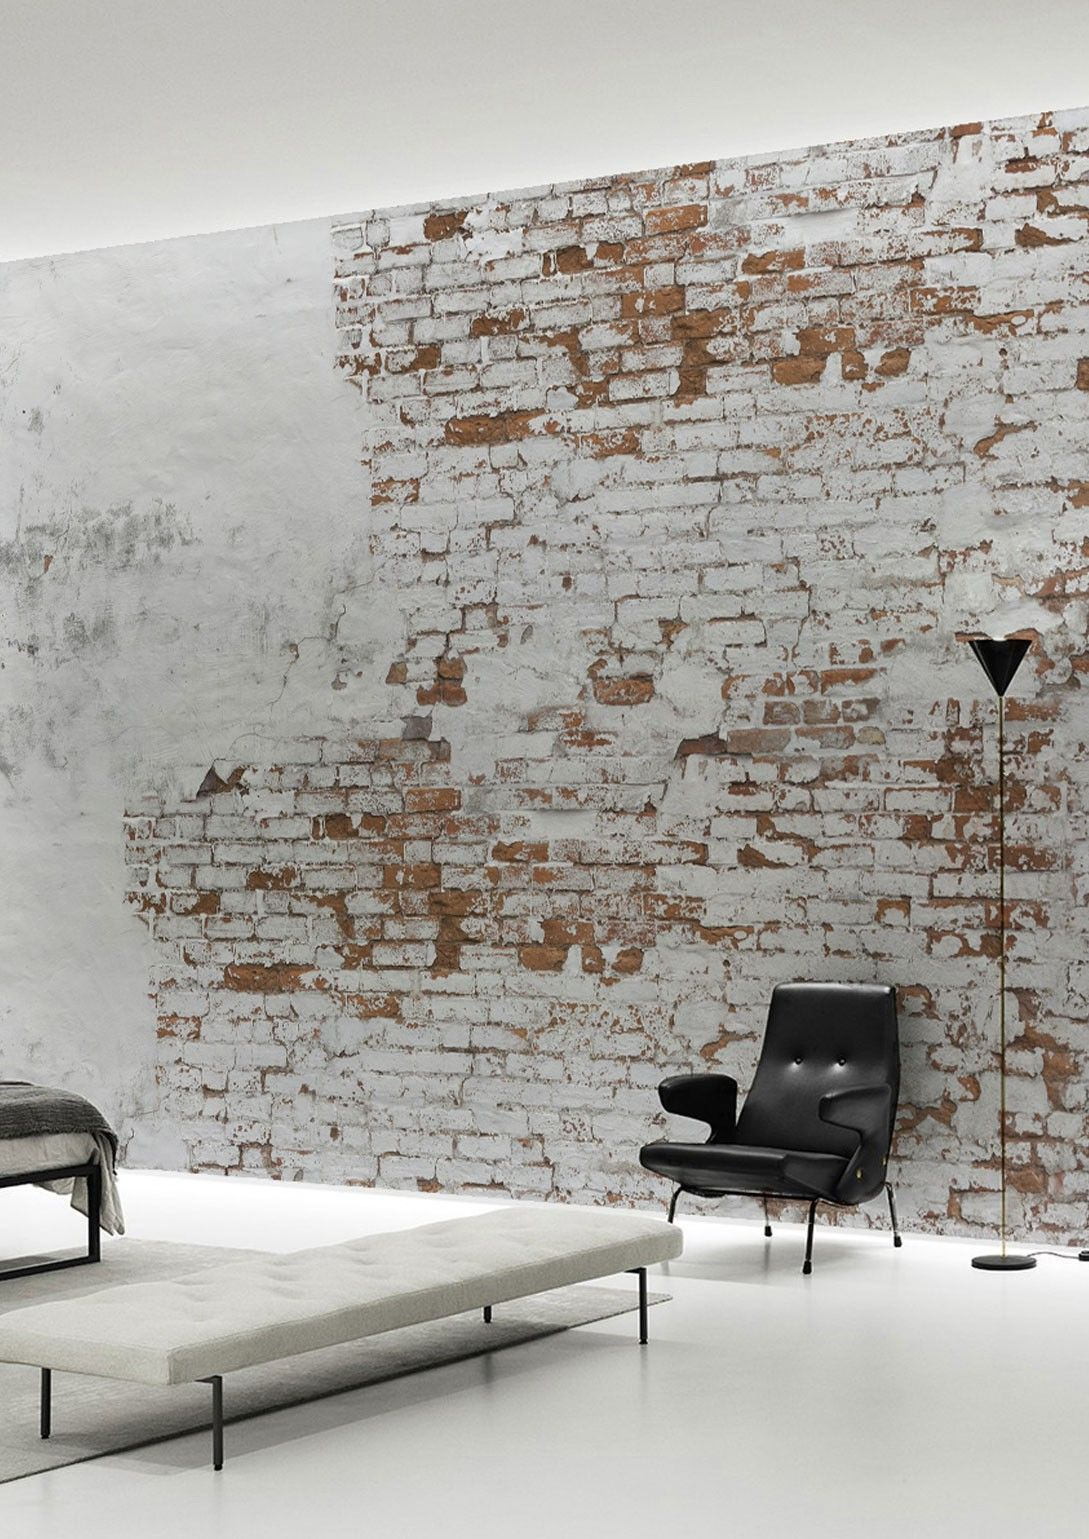 Create Your Own Industrial Wall In No Time With This Plaster Brick Wall Wallpaper Mural By